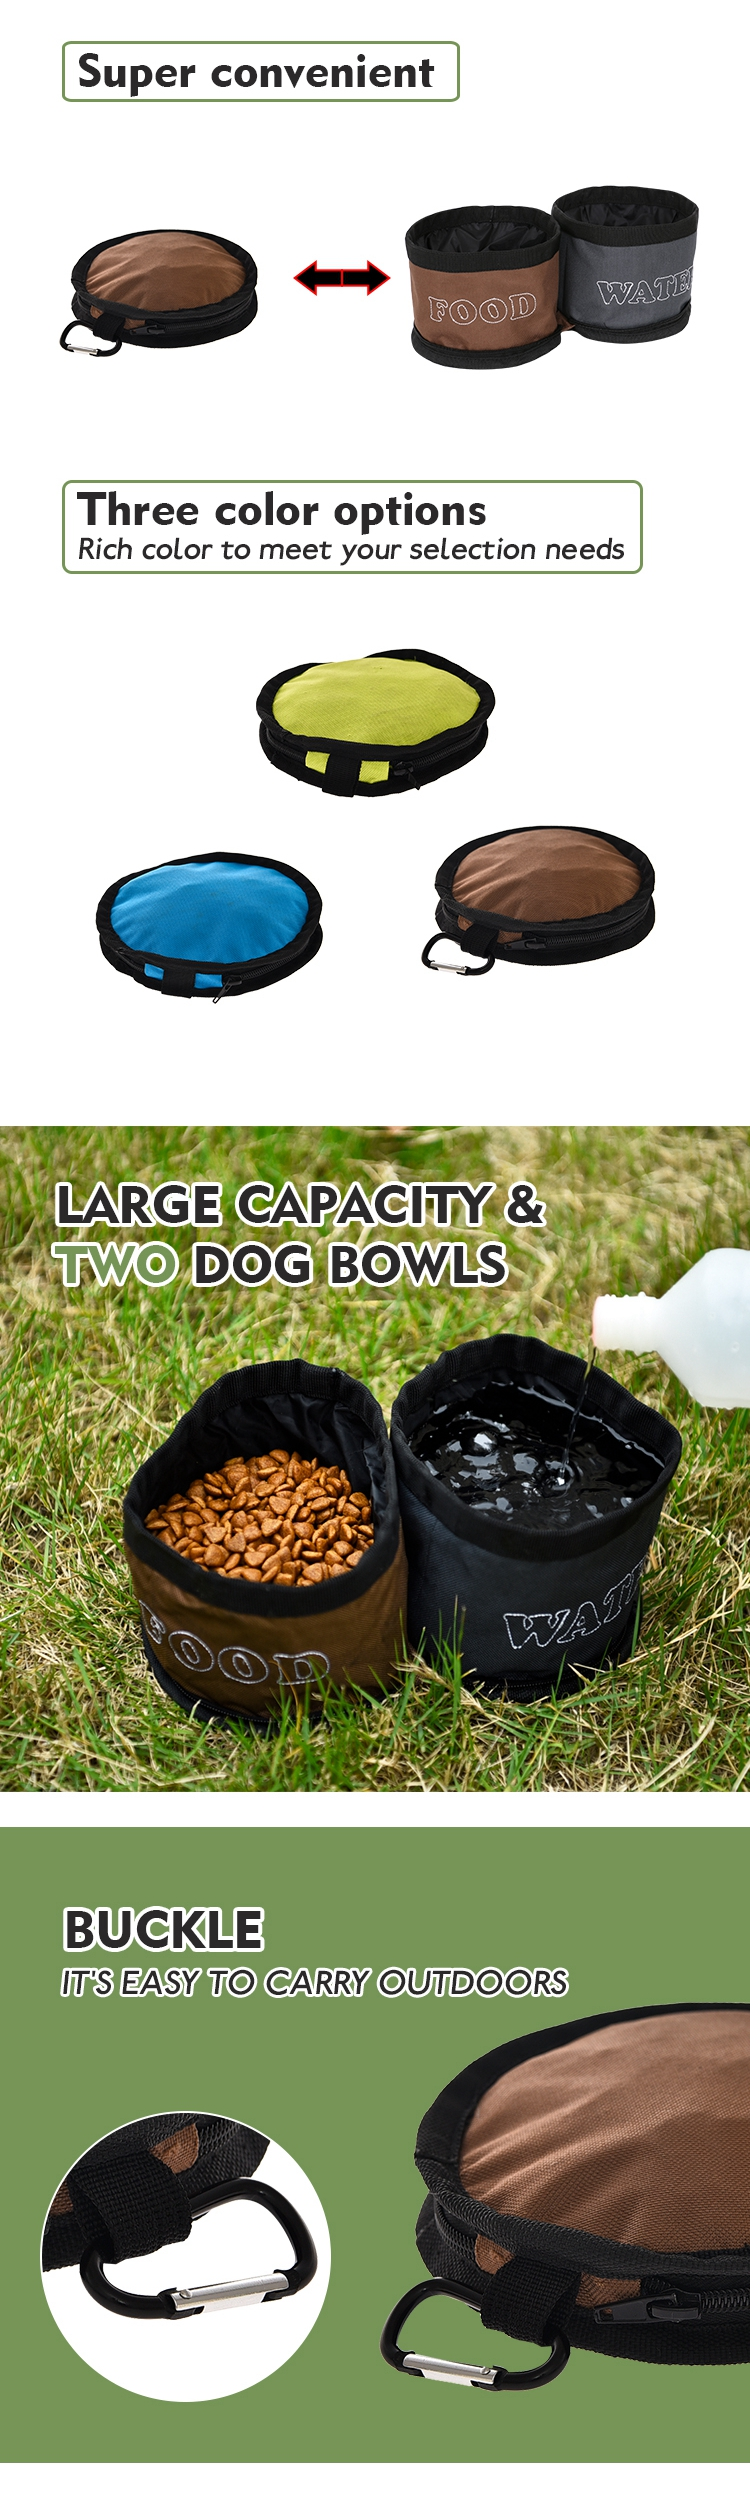 Tianyuan pet dog bowl foldable portable travel water bowl,travel food water bowl